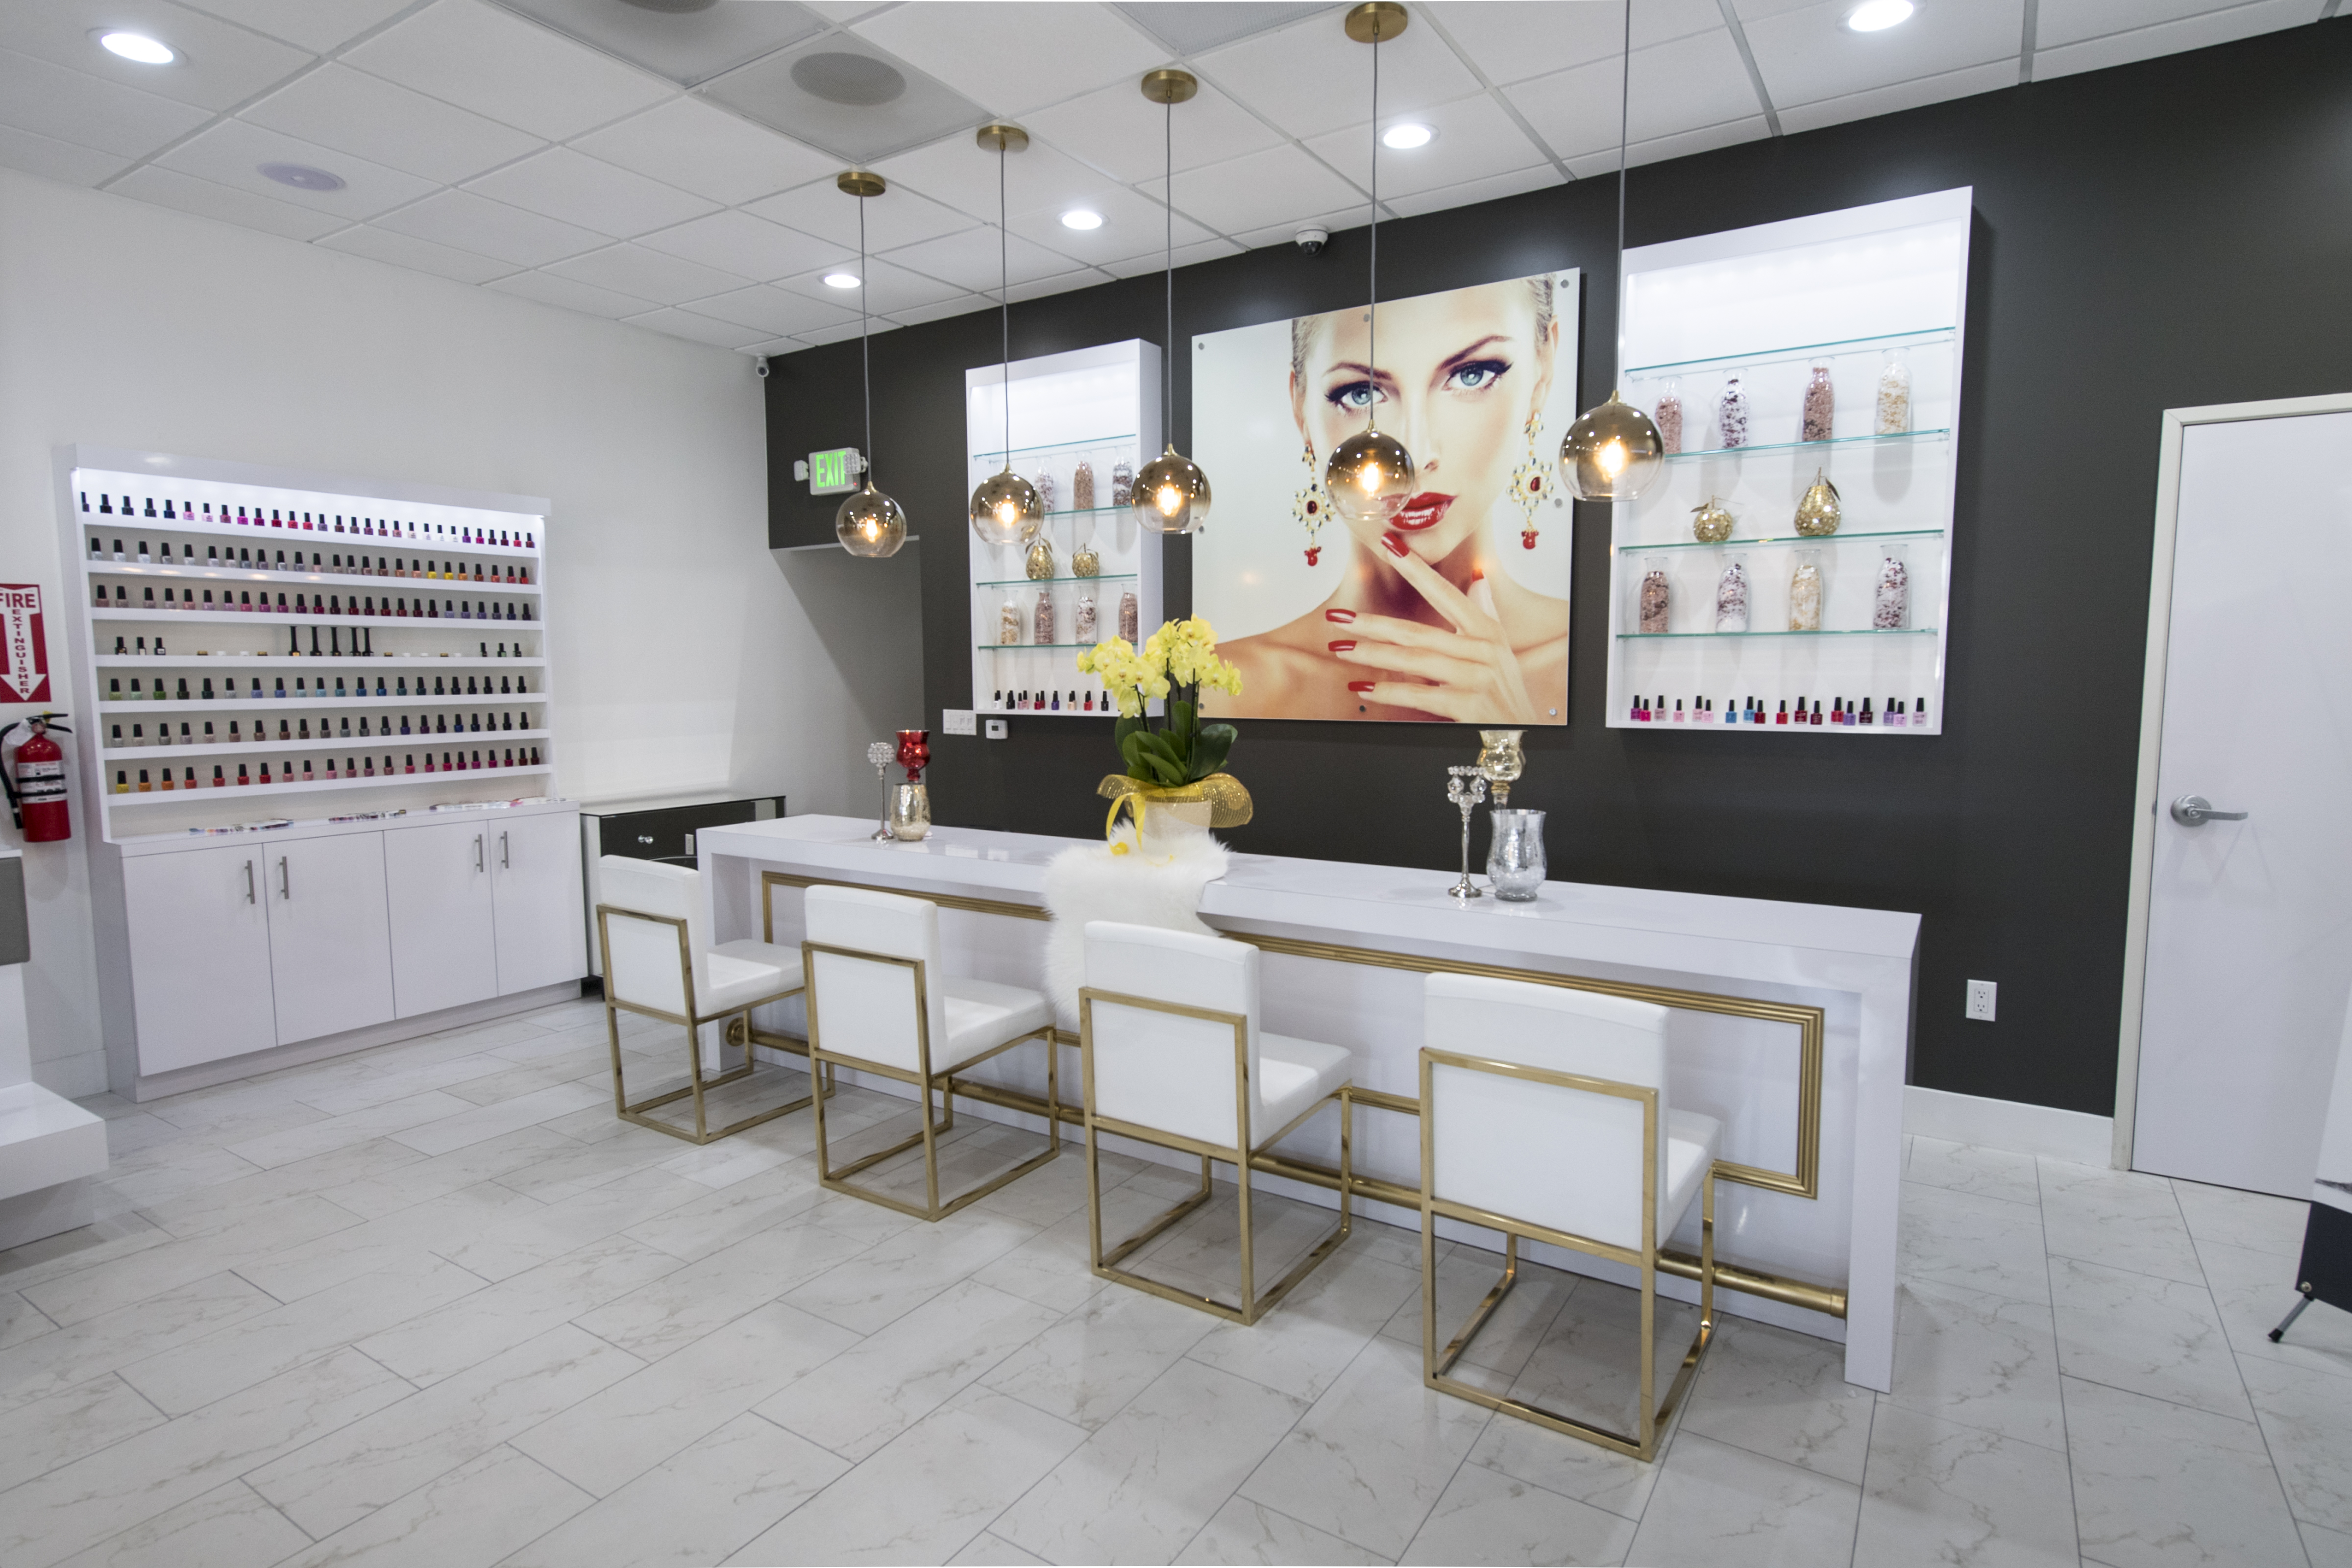 Studio 18 Nail Bar Provides Luxury Pedicures